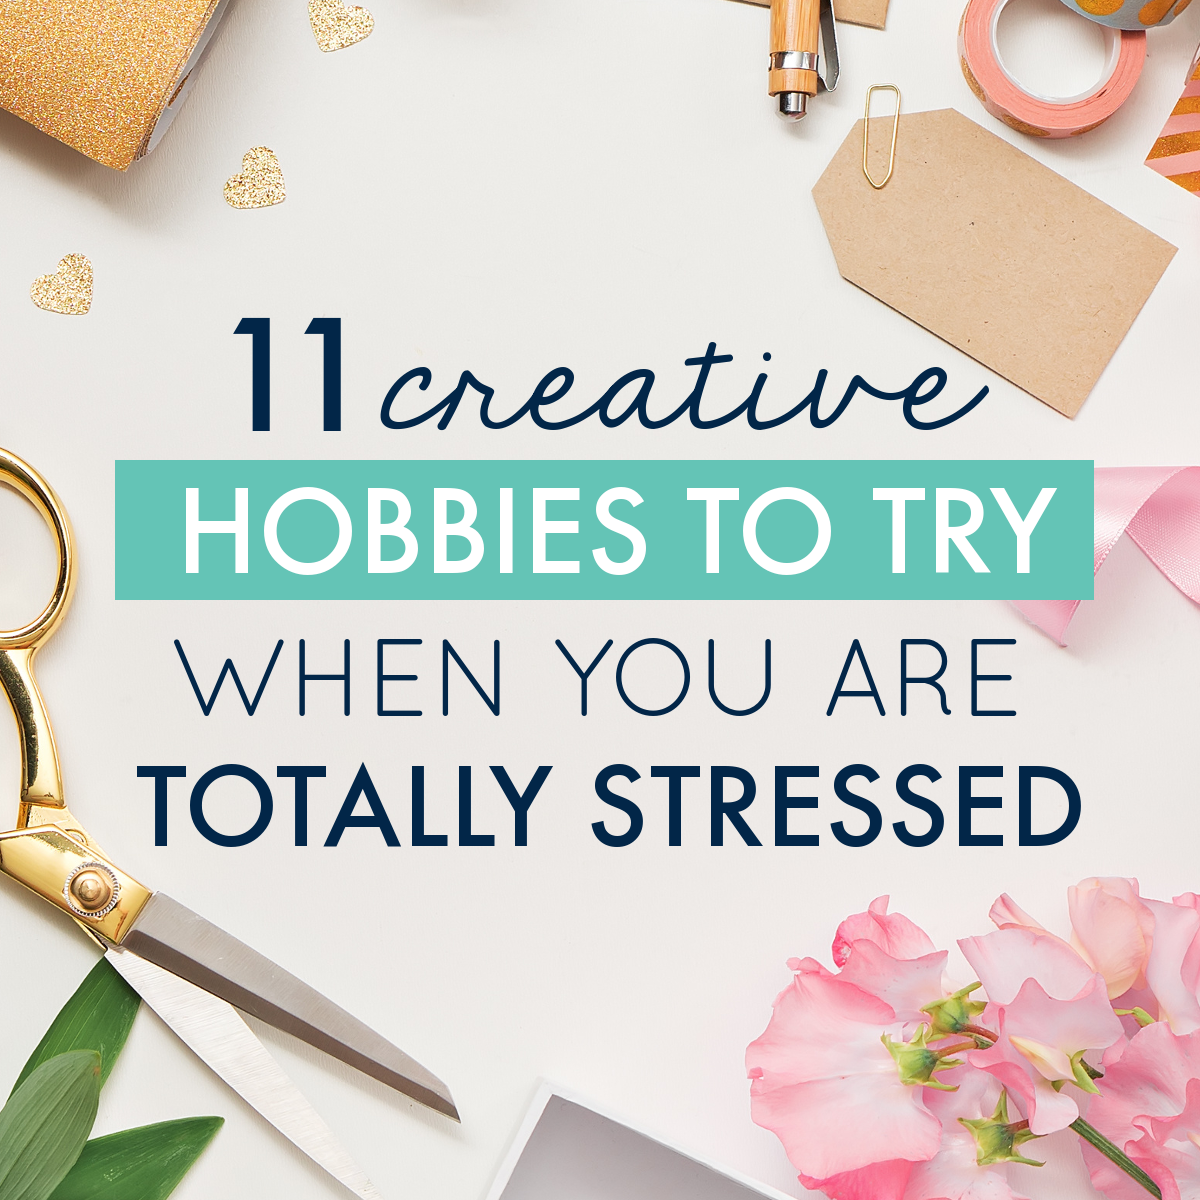 11 Creative Hobbies to Bring Balance Back into Your Life